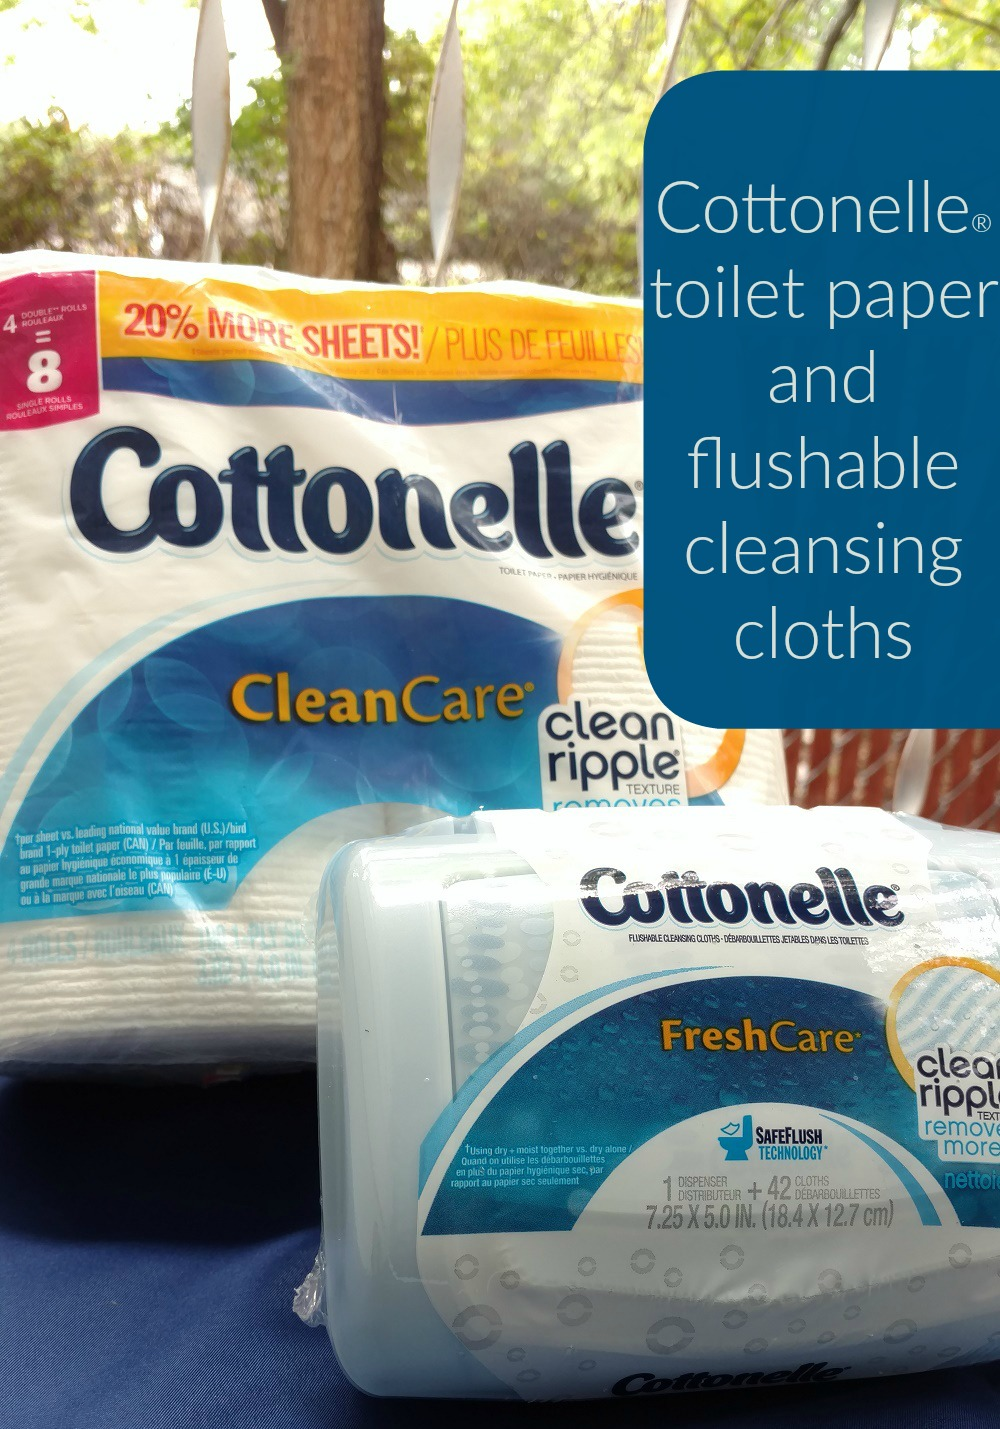 Cottonelle® toilet paper and flushable cleansing cloths Keeping Personal Comfort and Confidence During Summer Physical Activity